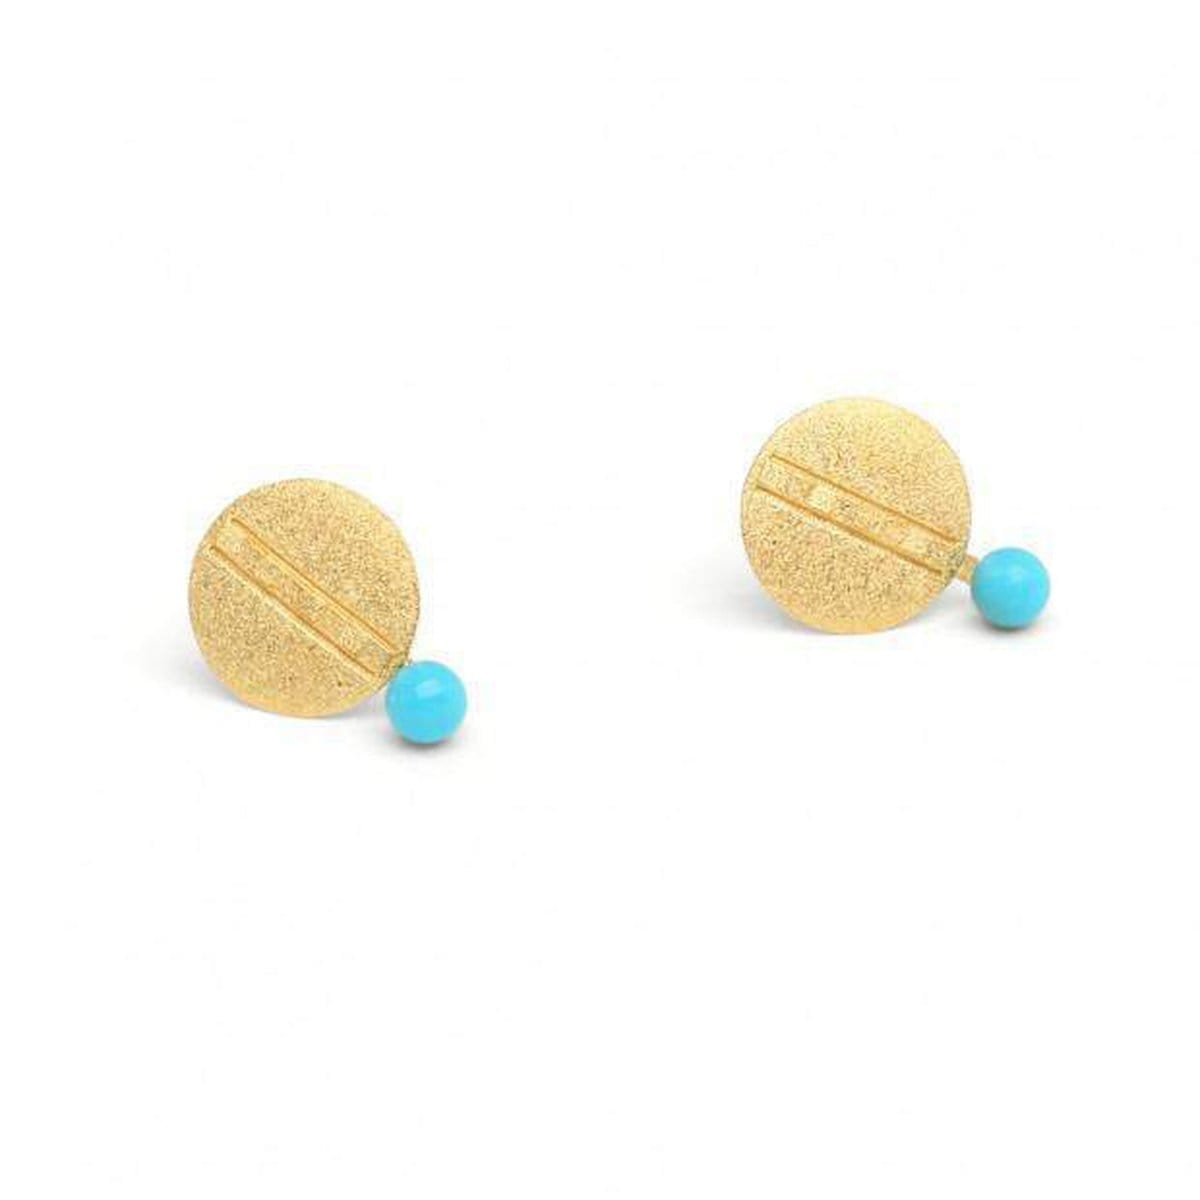 Pamette Turquoise Pin Earrings - 19280256-Bernd Wolf-Renee Taylor Gallery